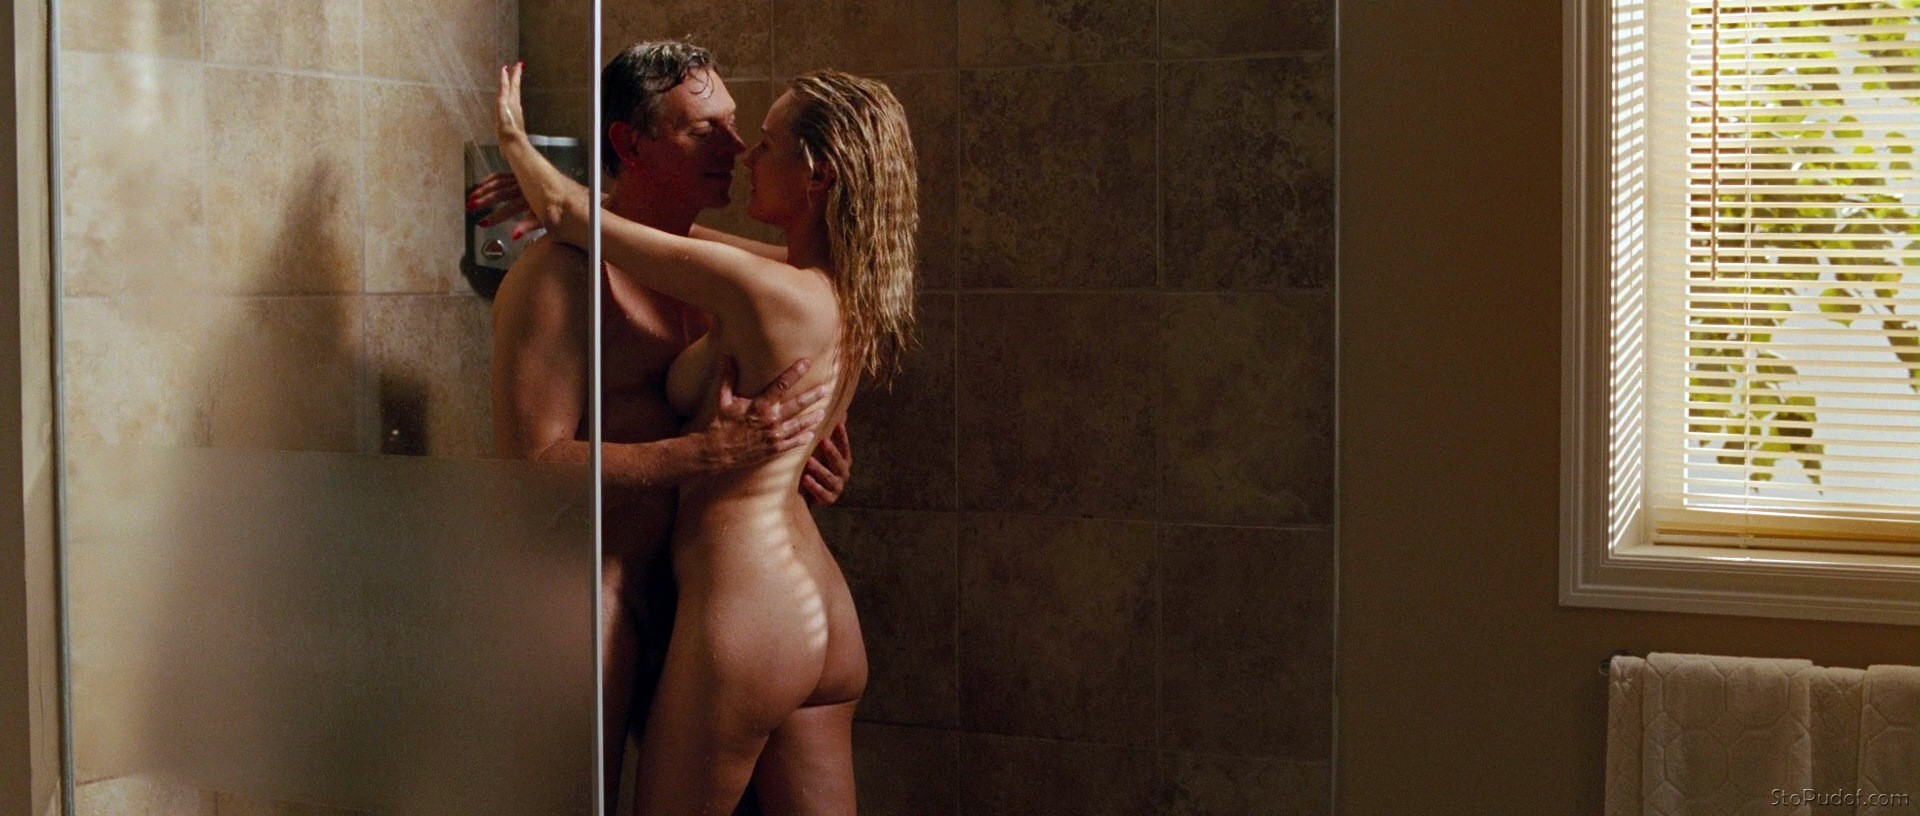 hacked nude pictures of Diane Kruger - UkPhotoSafari